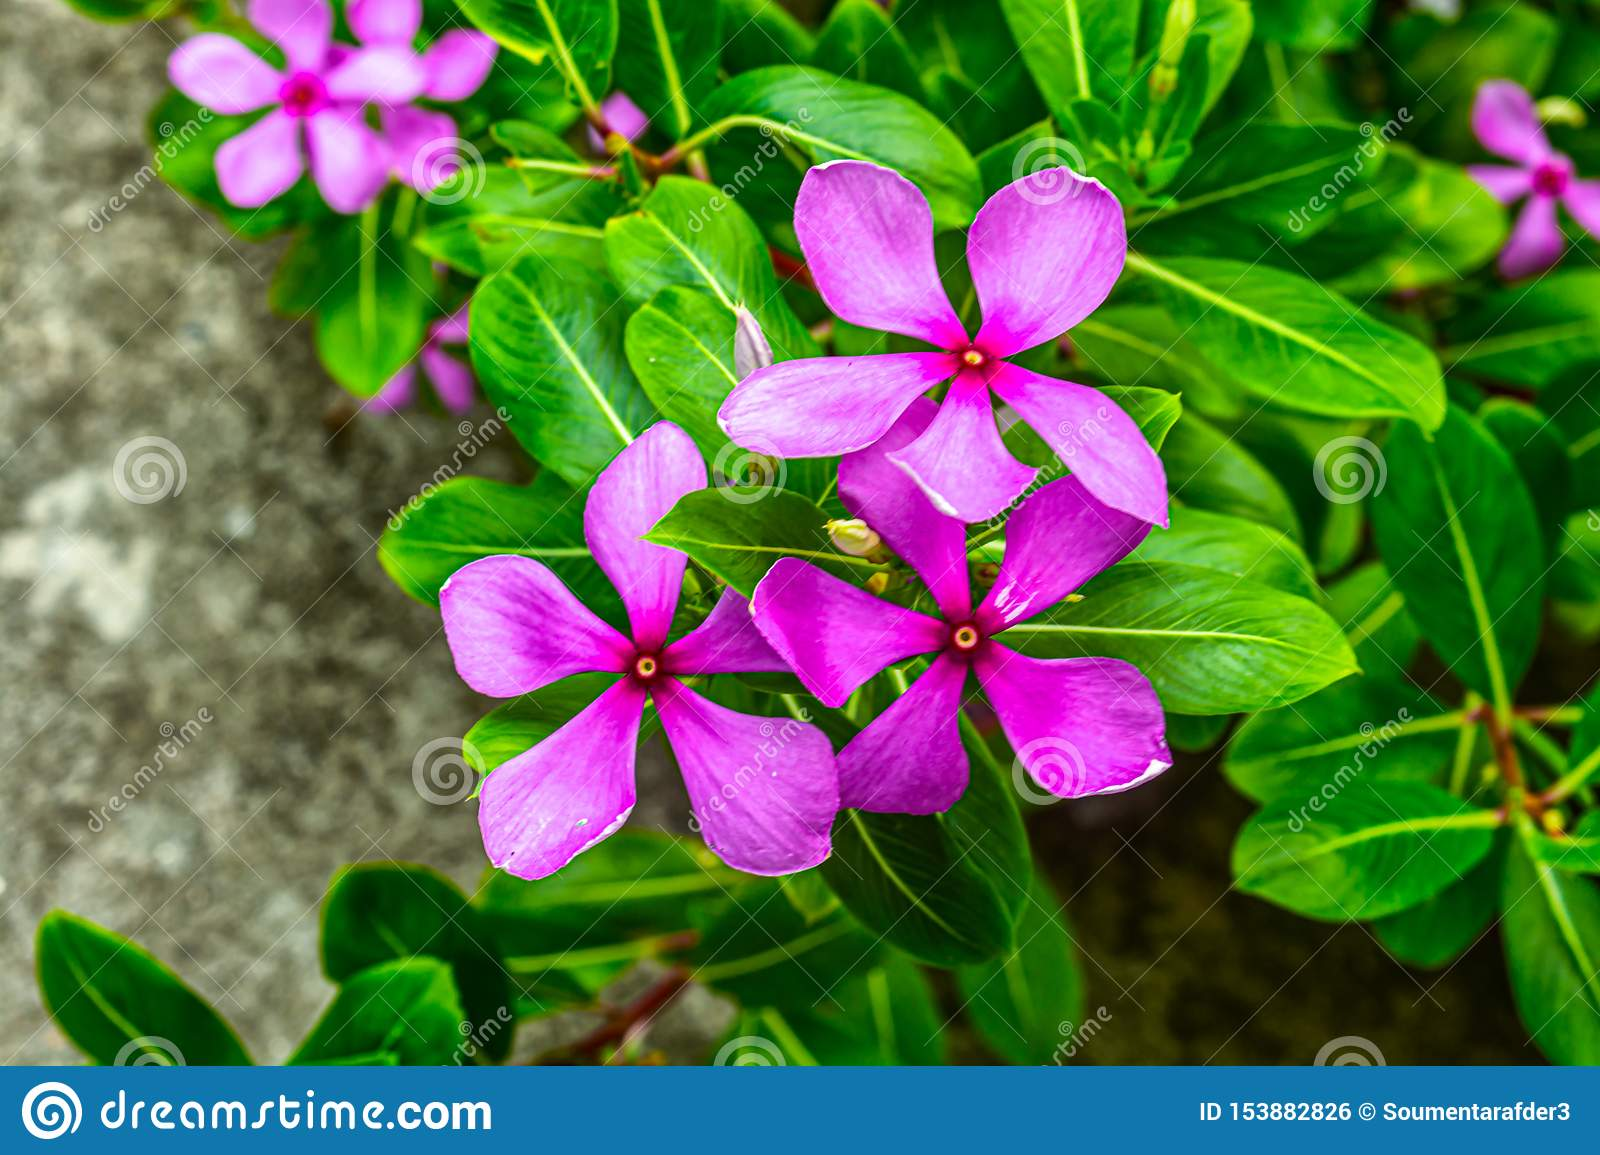 Close Up View Of Three Pink Color Catharanthus Roseus Or ...